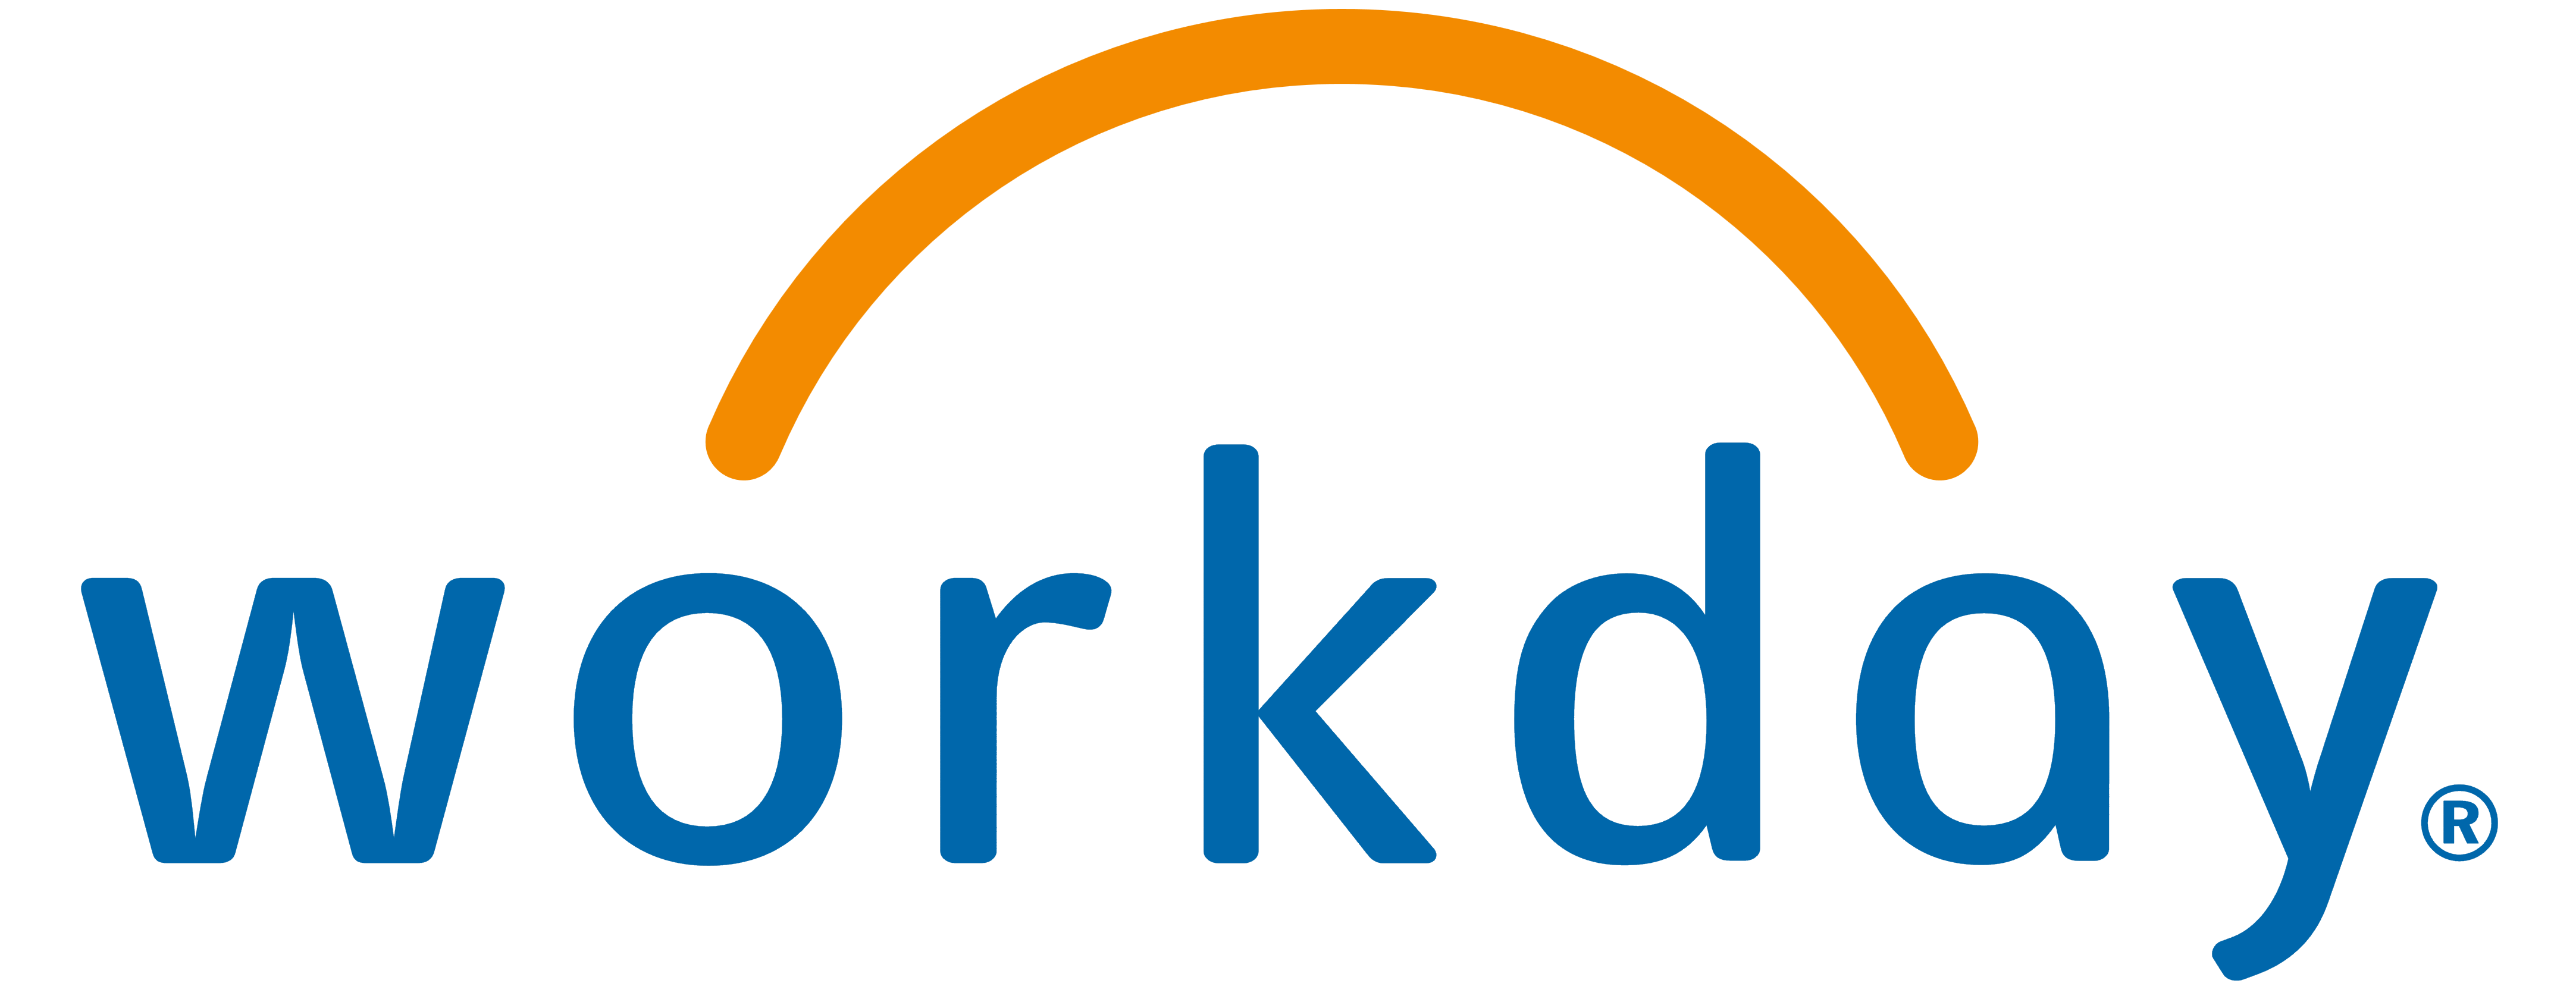 A business logo of a HR application 'Workday' that virtual accounting company Tickmarks supports.